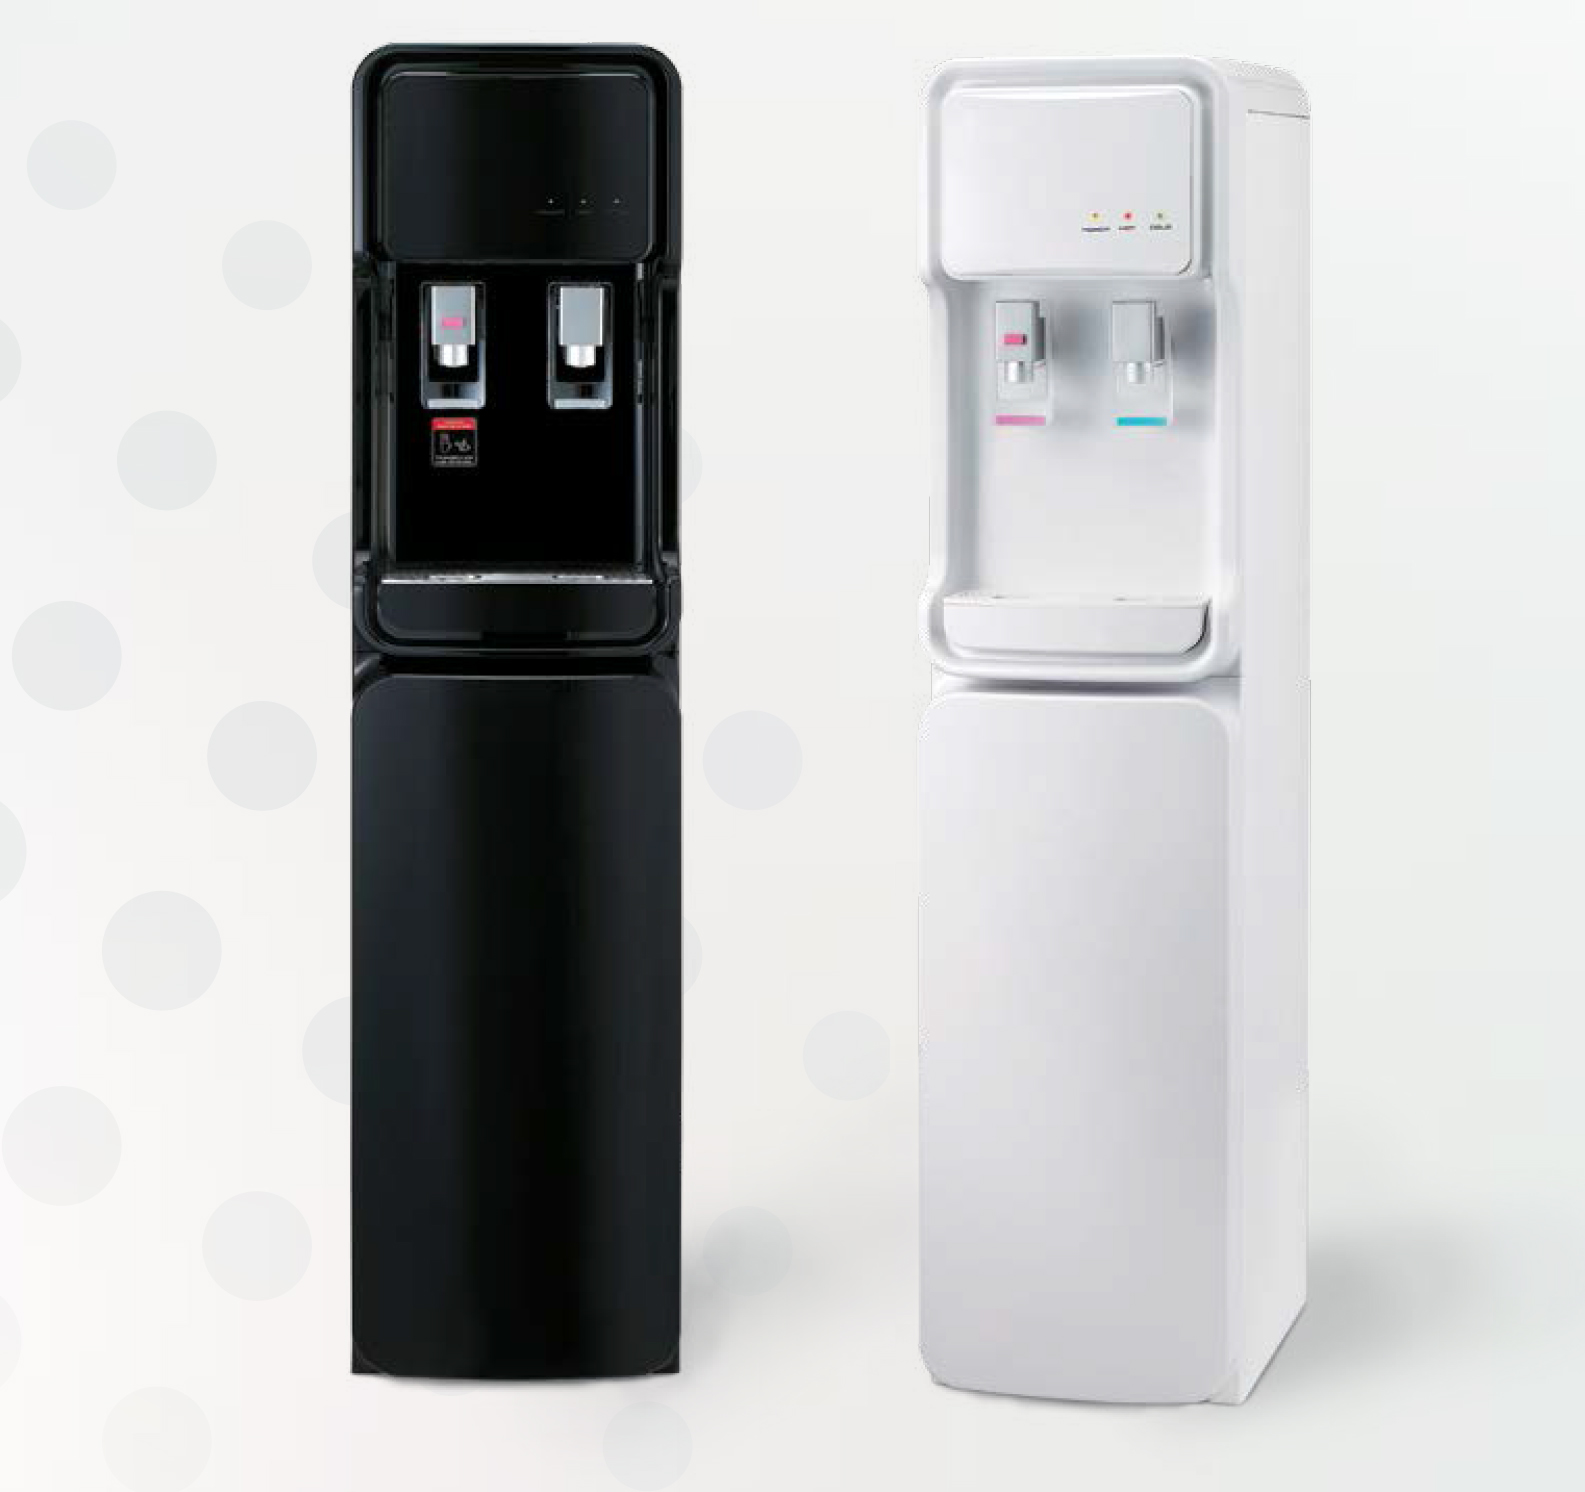 Cooled & Heated Water Dispenser